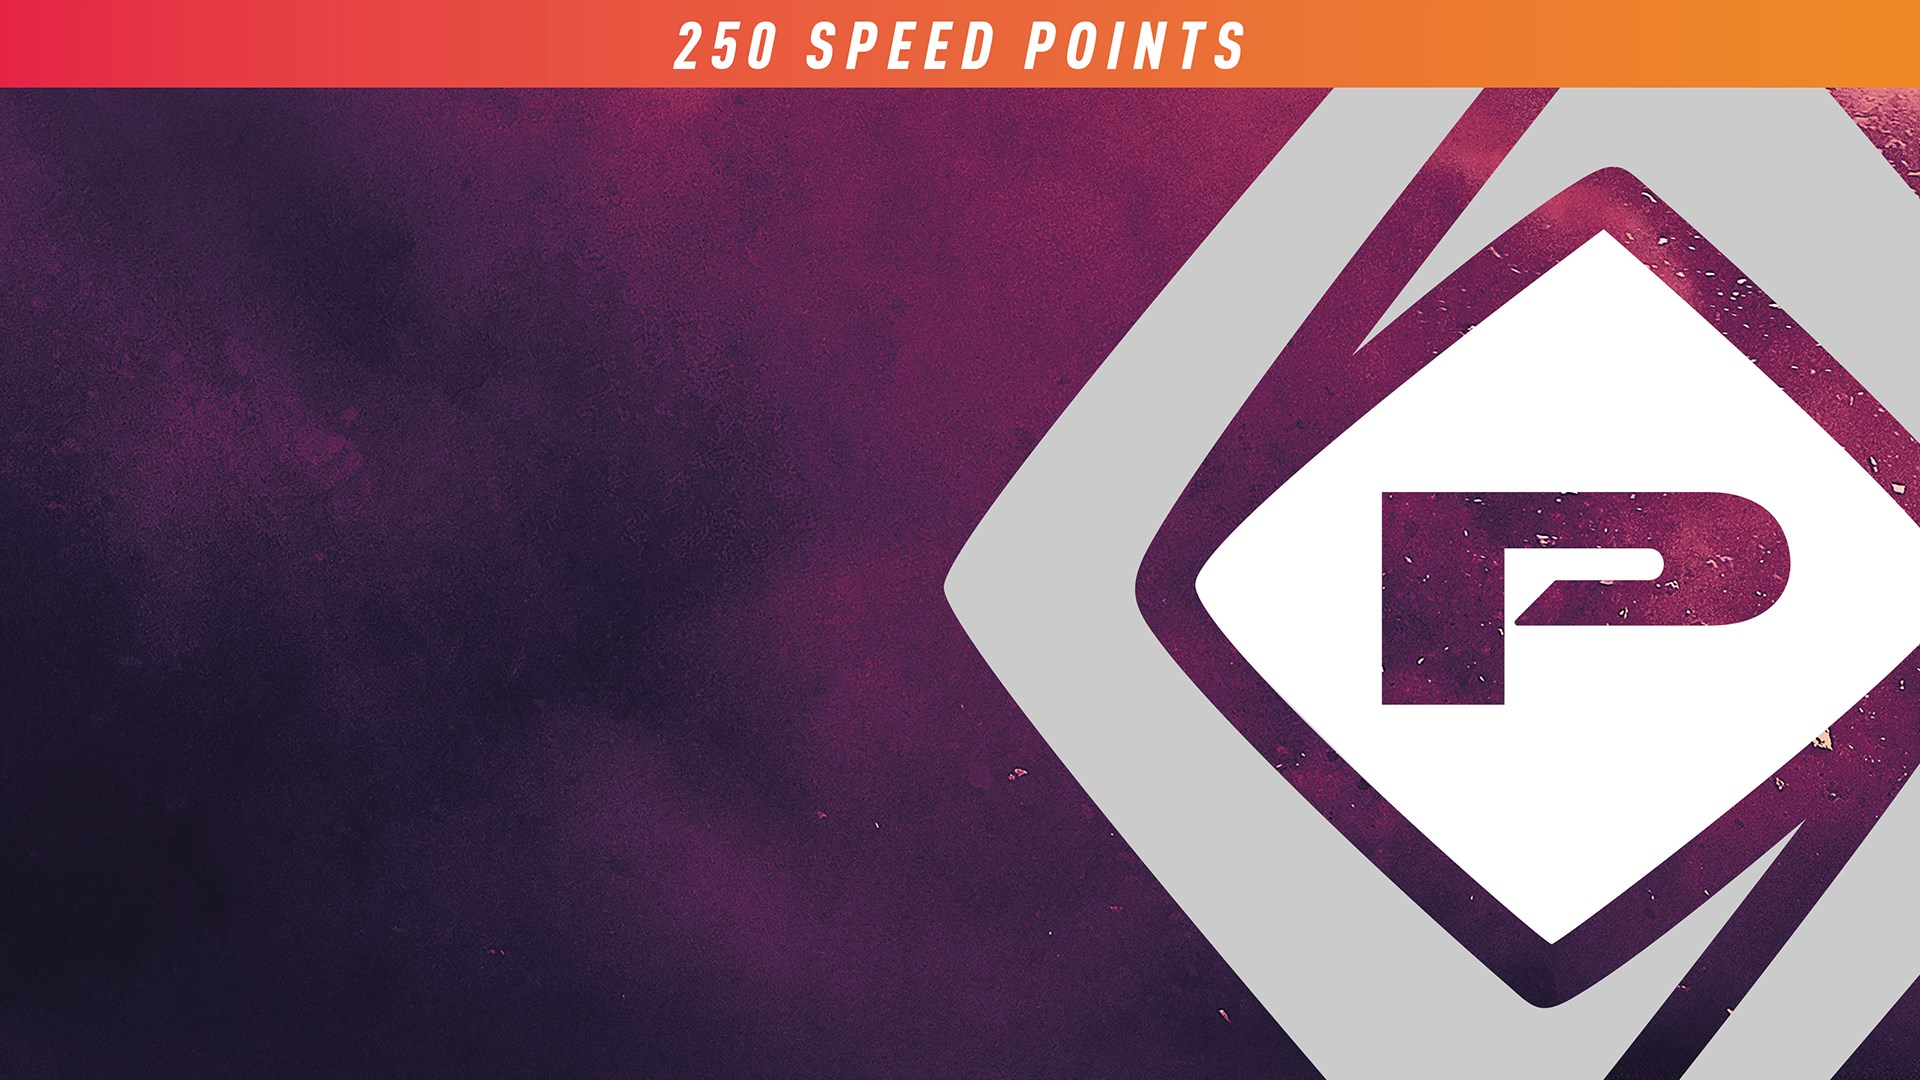 NFS Payback 250 Speed Points